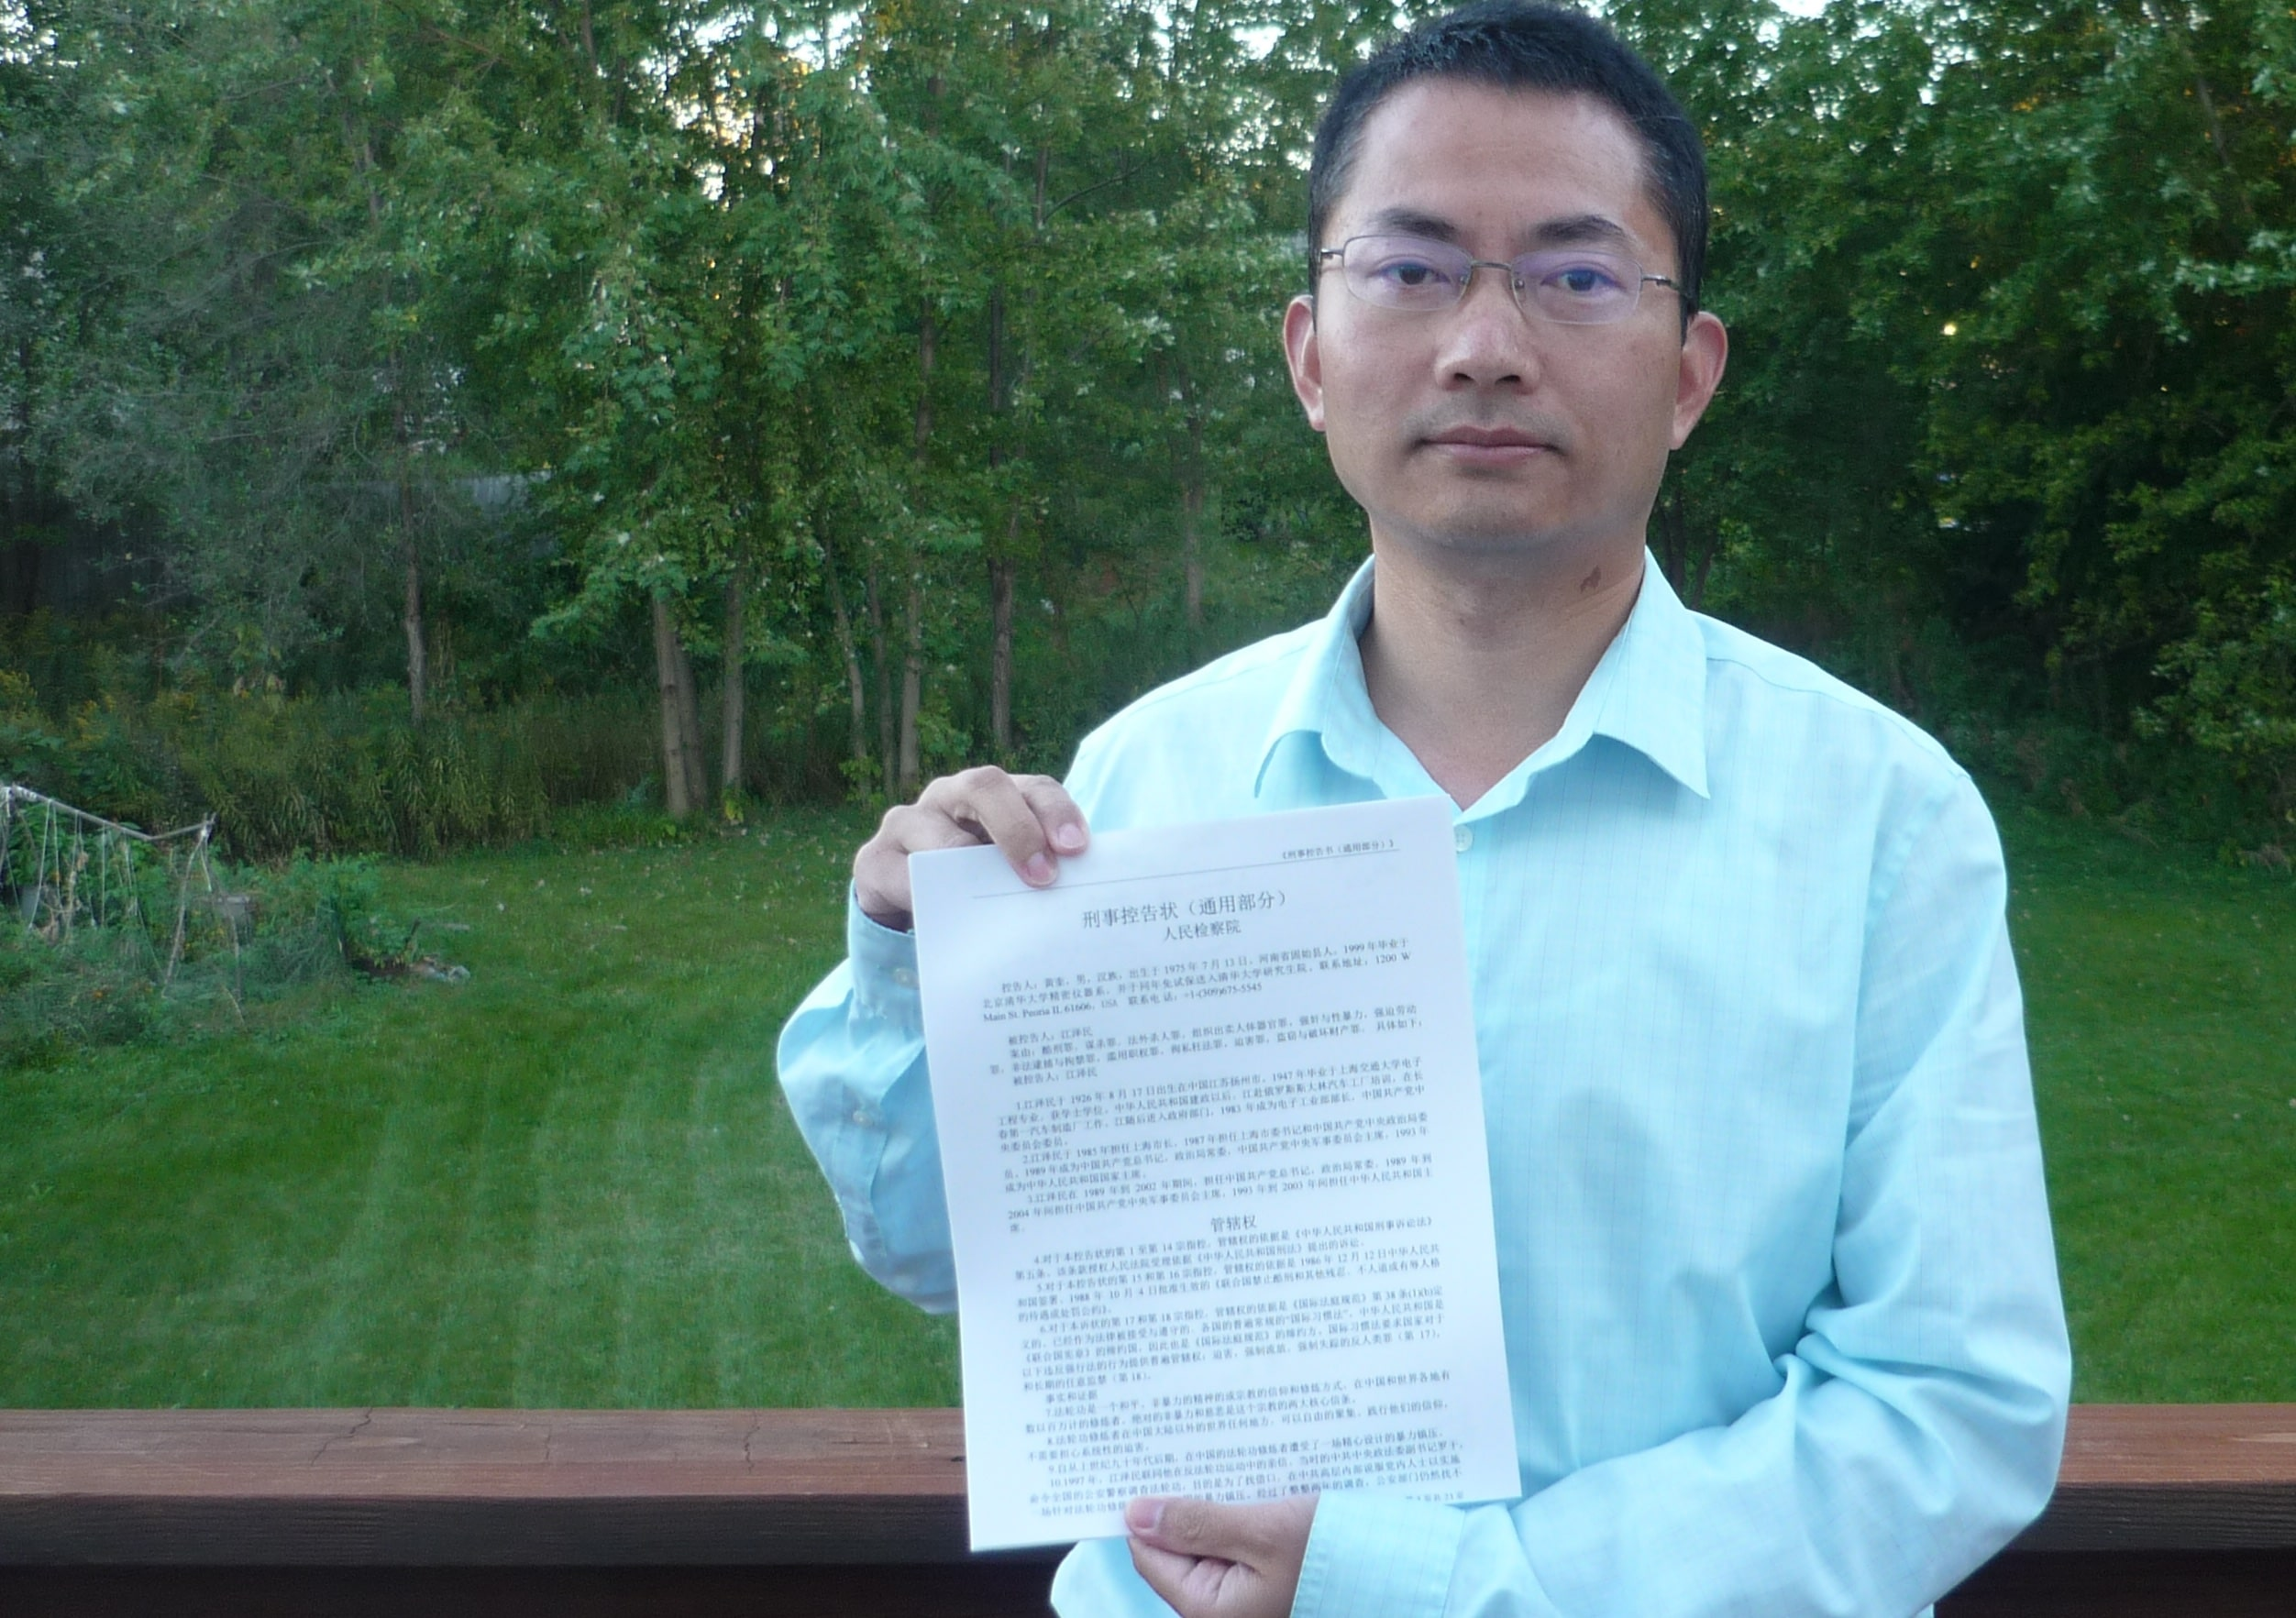 Huang Kui holds up a copy of a complaint that he submitted to Chinese courts together with 34 other people affliliated with the prestigious Tsinghua University who like him have suffered persecution for practicing Falun Gong. The complaint charges former Communist Party leader Jiang Zemin with illegal imprisonment, torture, and a dozen other crimes committed in the campaign against Falun Gong. It is one of over 160,000 such complaints submitted to Chinese courts since May.